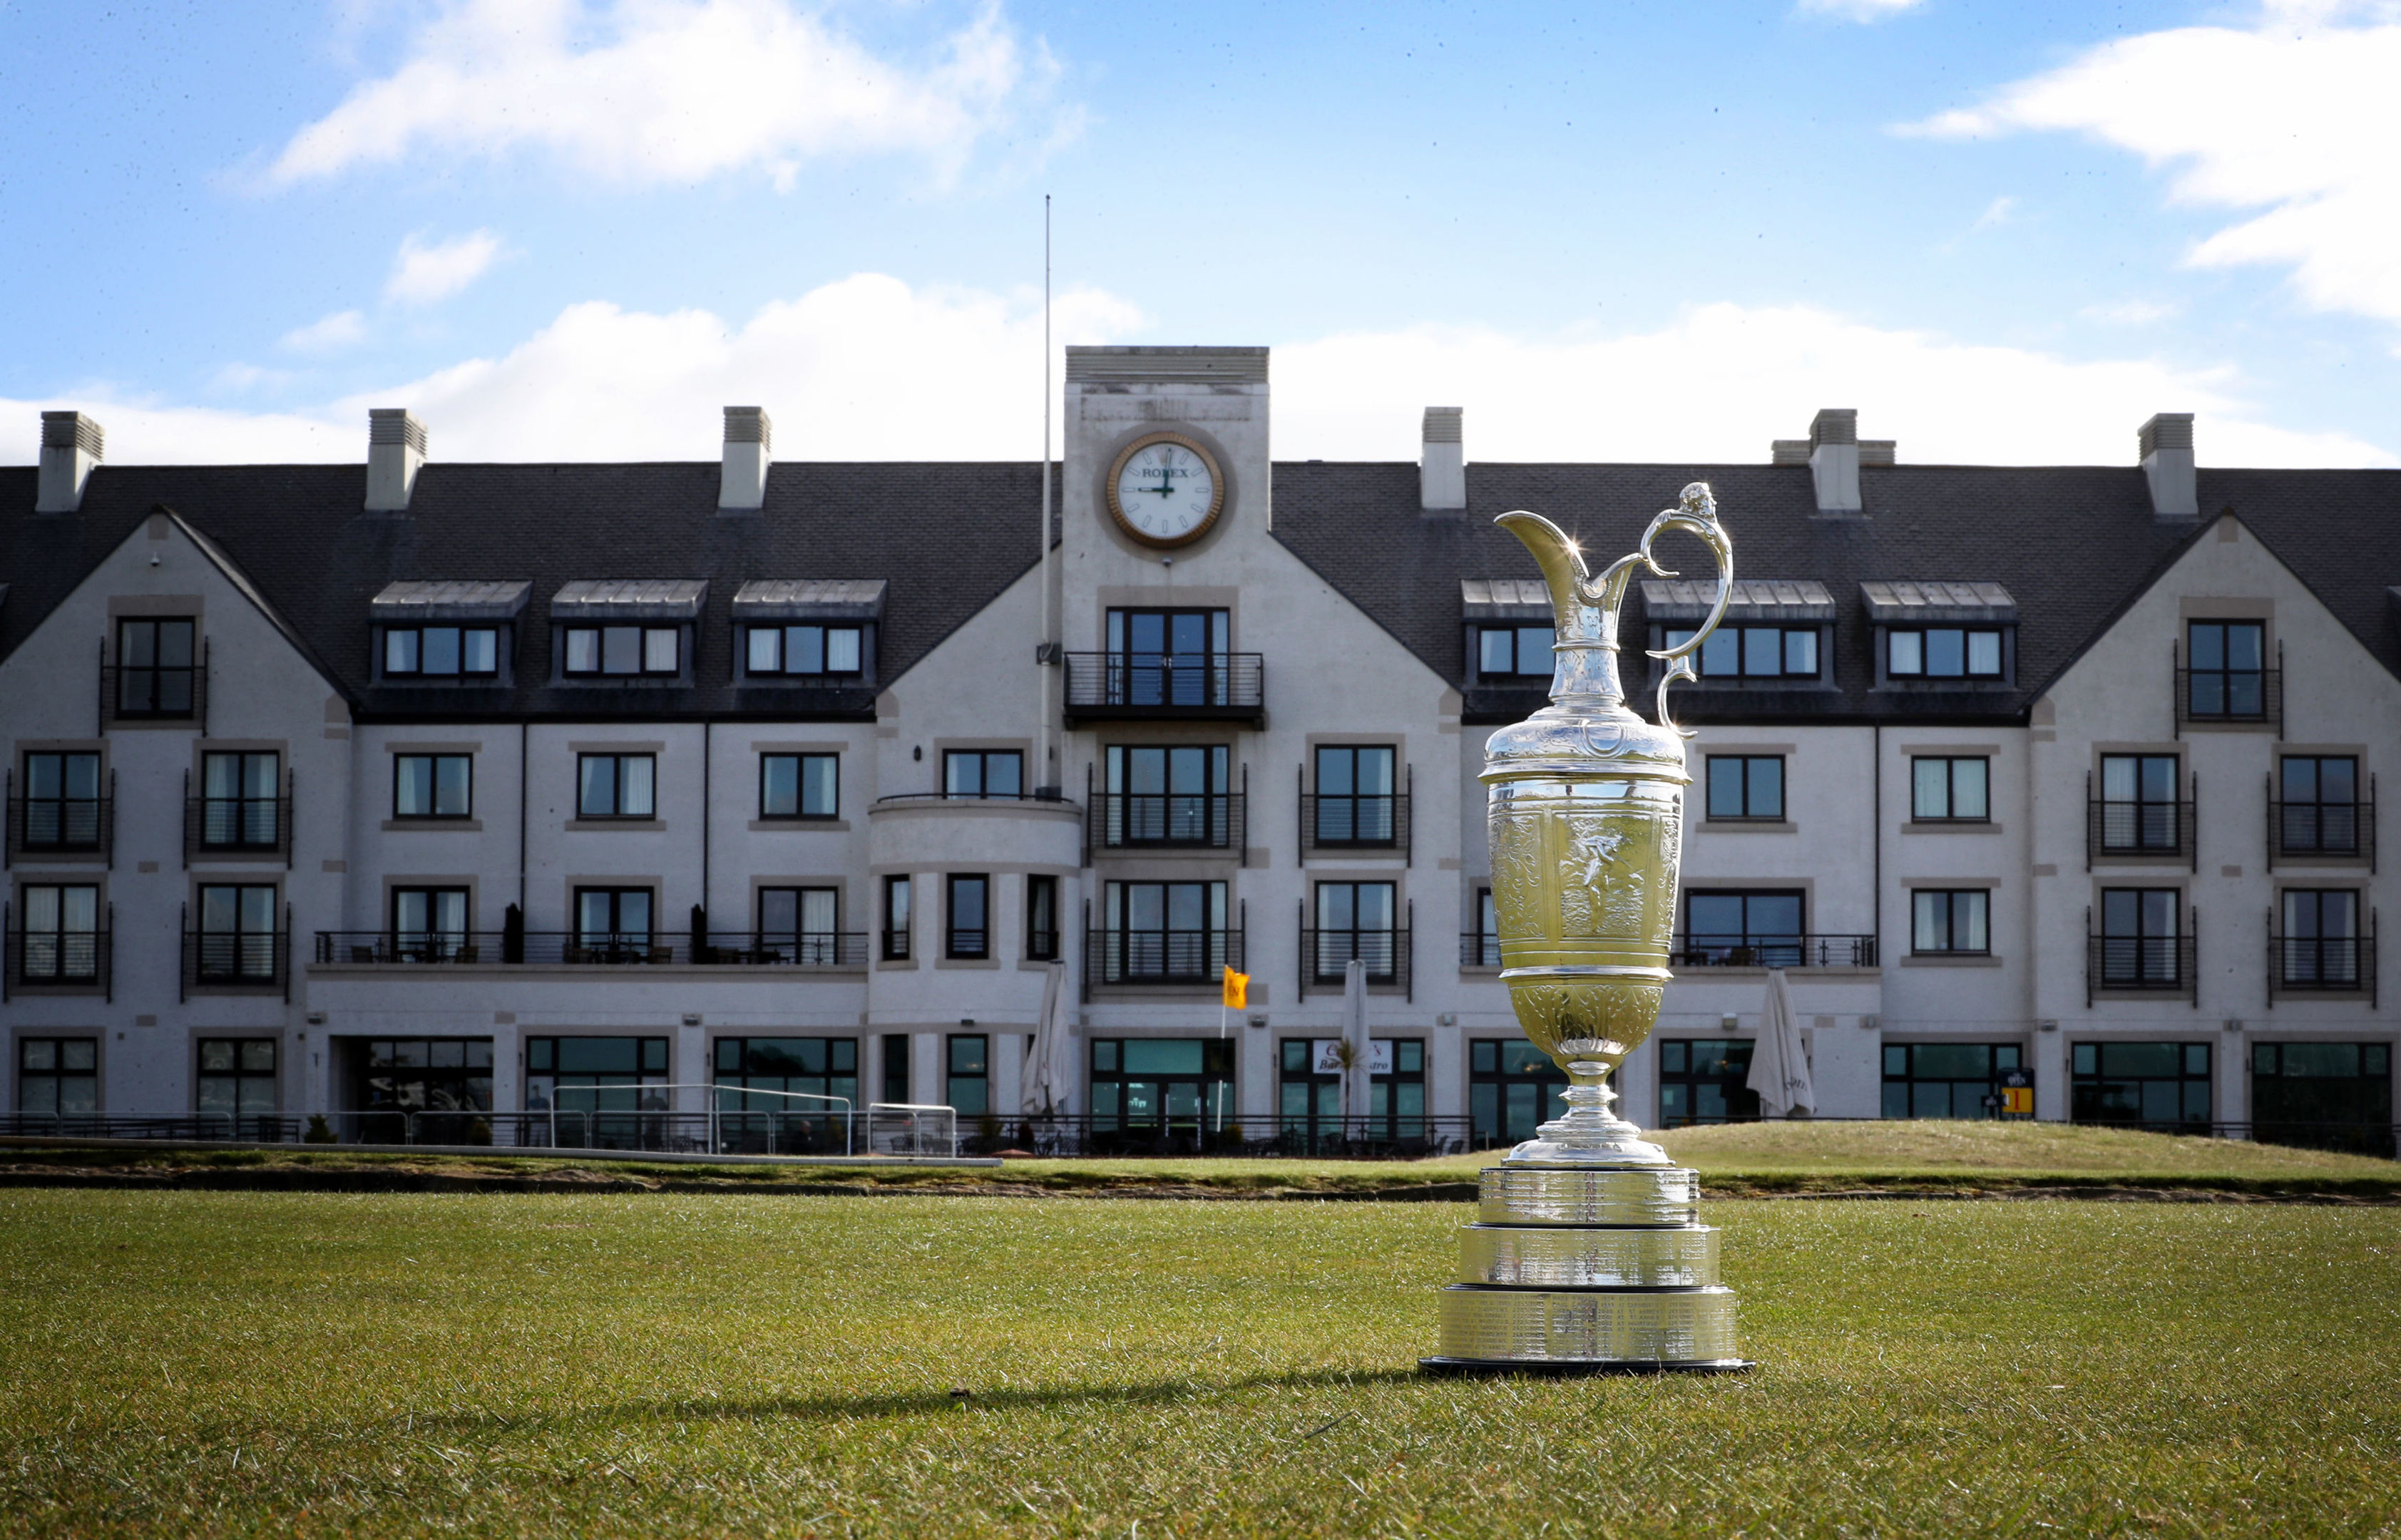 The famous Claret Jug in front of the clubhouse at Carnoustie Golf Course.